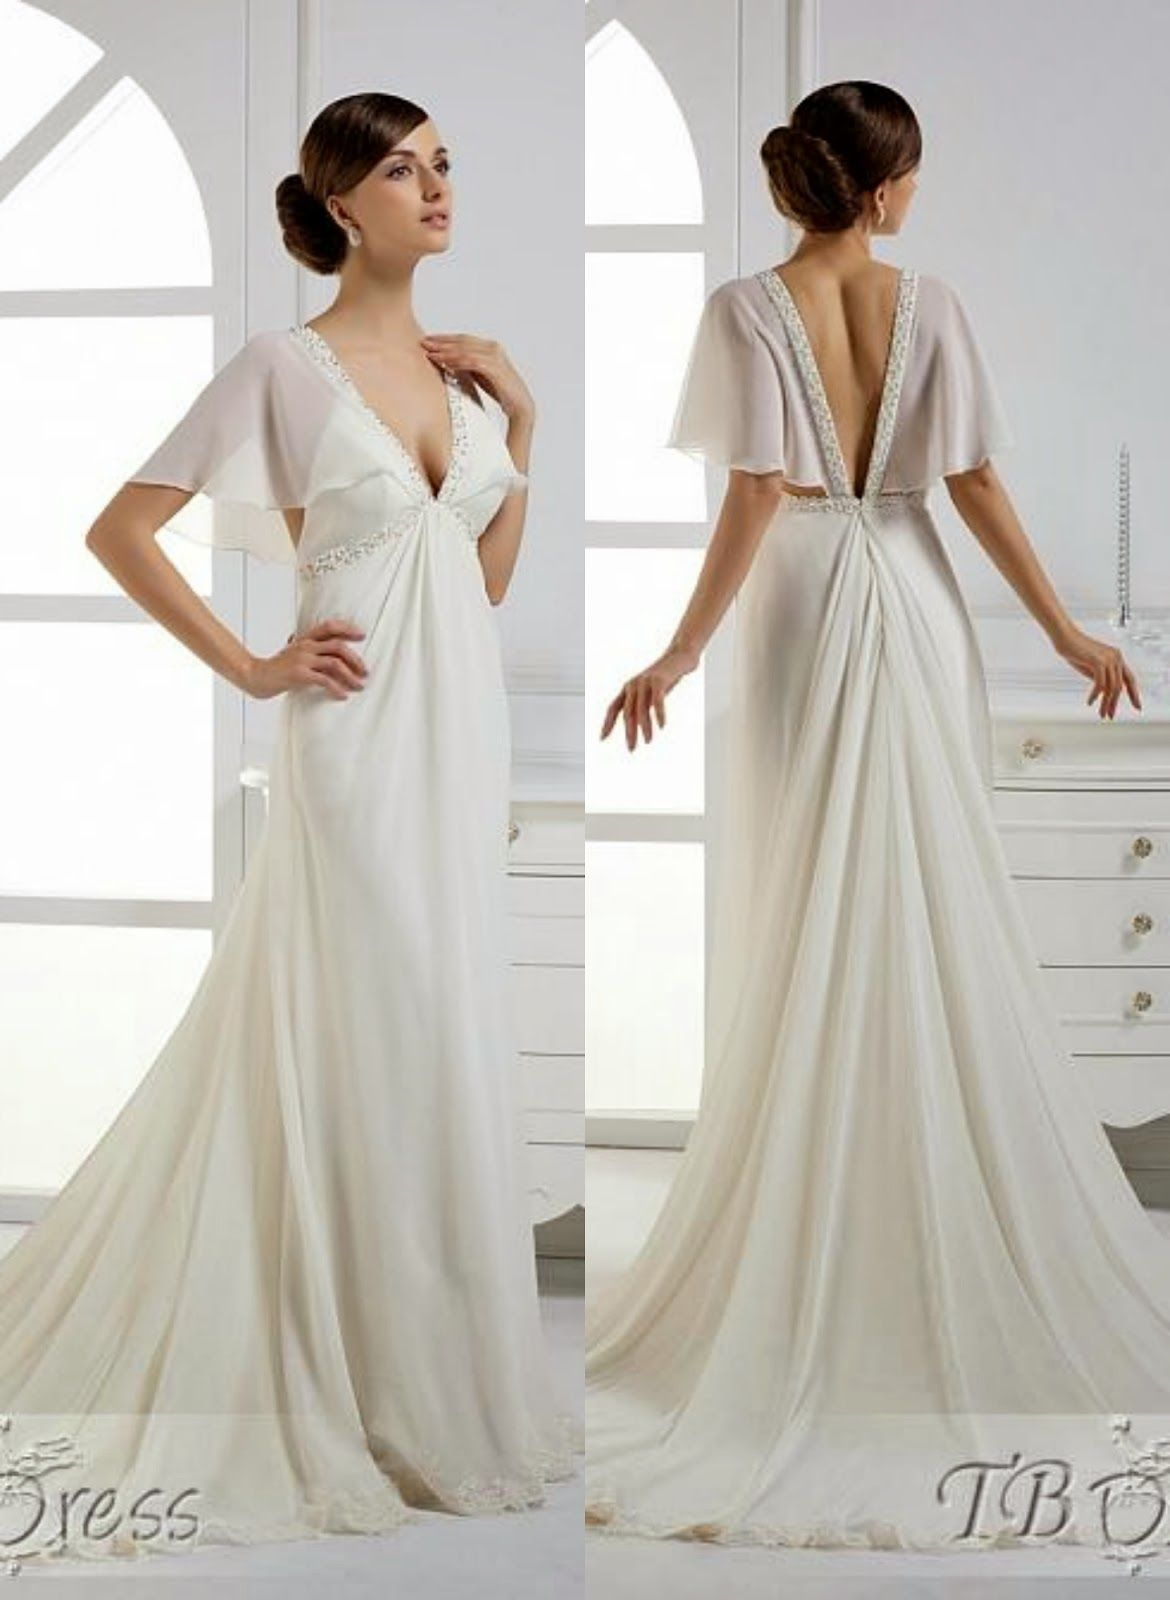 Maternity wedding dresses maternity wedding dresses wedding tbdress cheap maternity wedding dresses best free home design idea inspiration ombrellifo Image collections